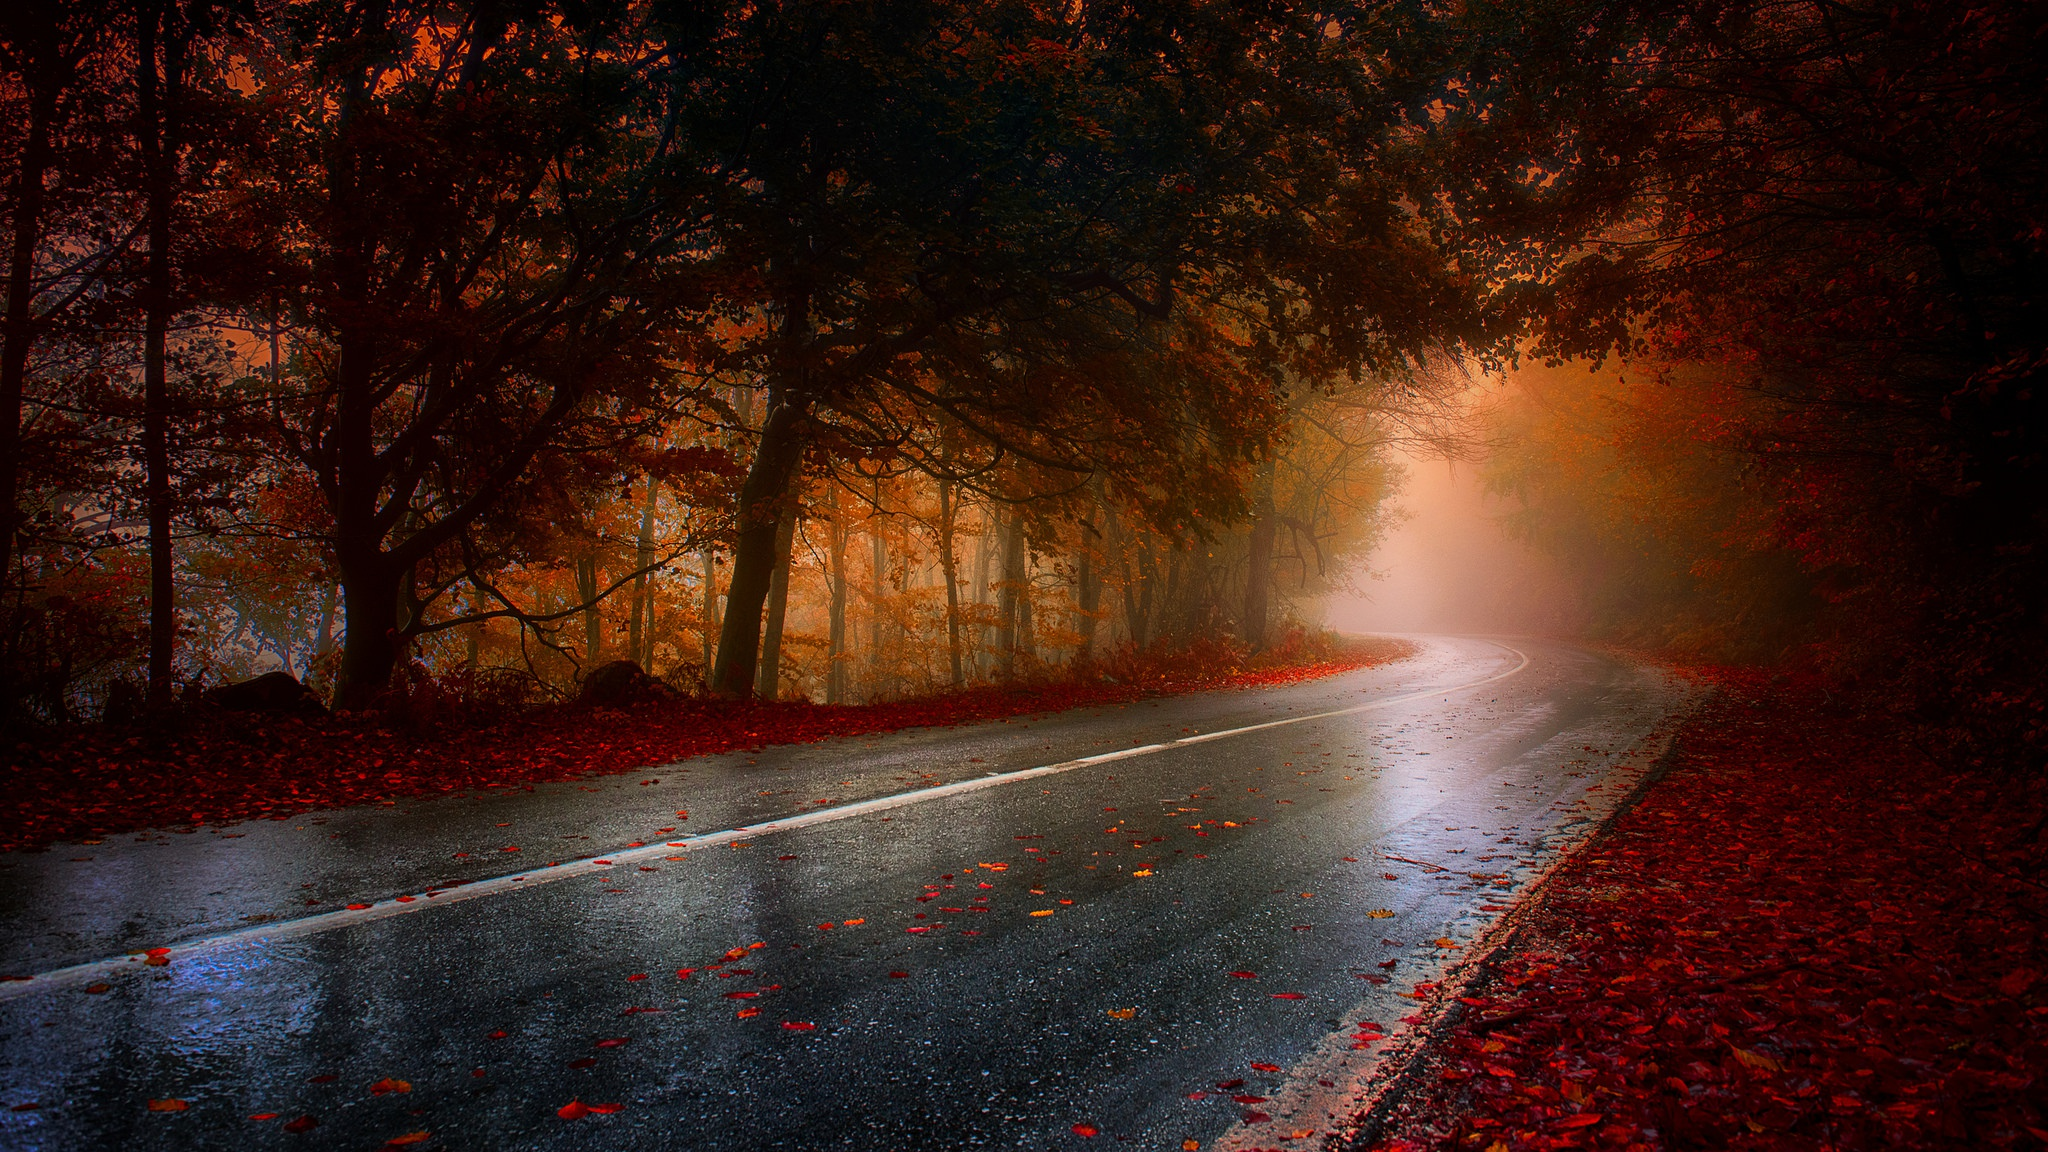 Wet rainy road leaf fallen hd hd nature 4k wallpapers images backgrounds photos and pictures - Rainy hd wallpaper for pc ...